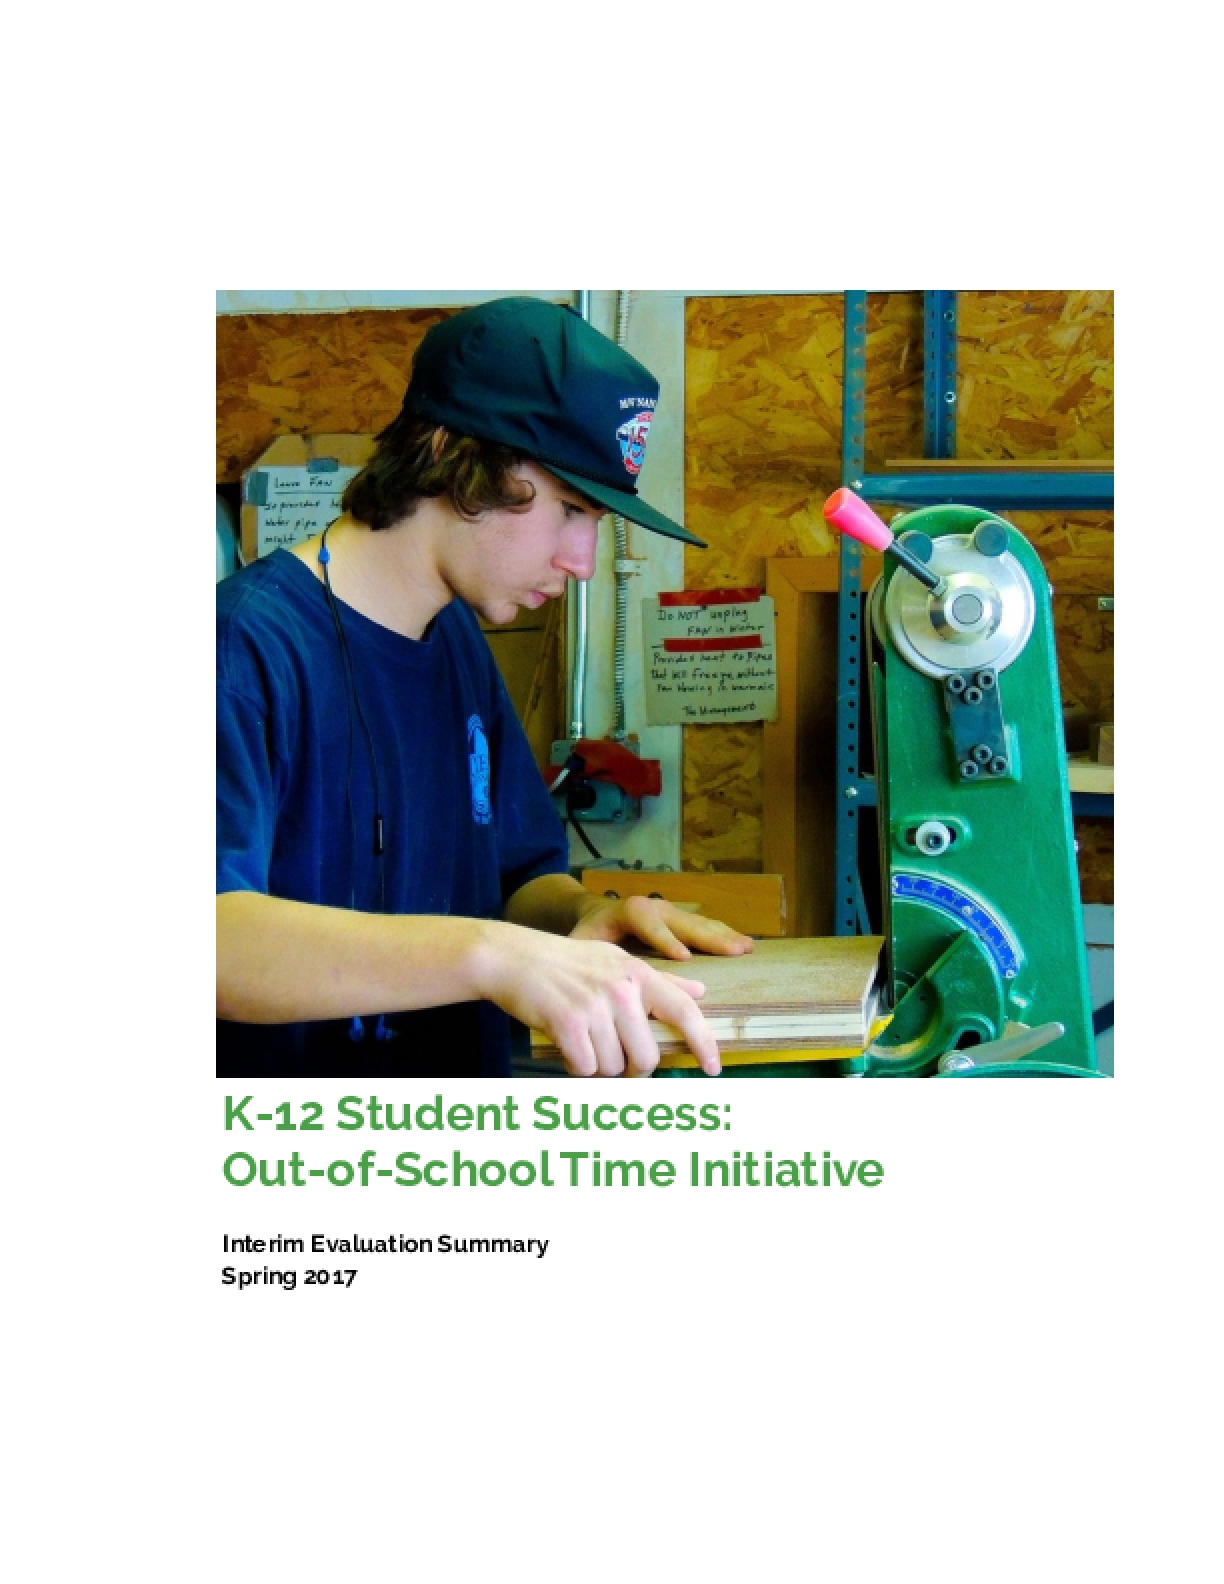 K-12 Student Success: Out-of-School time Initiative